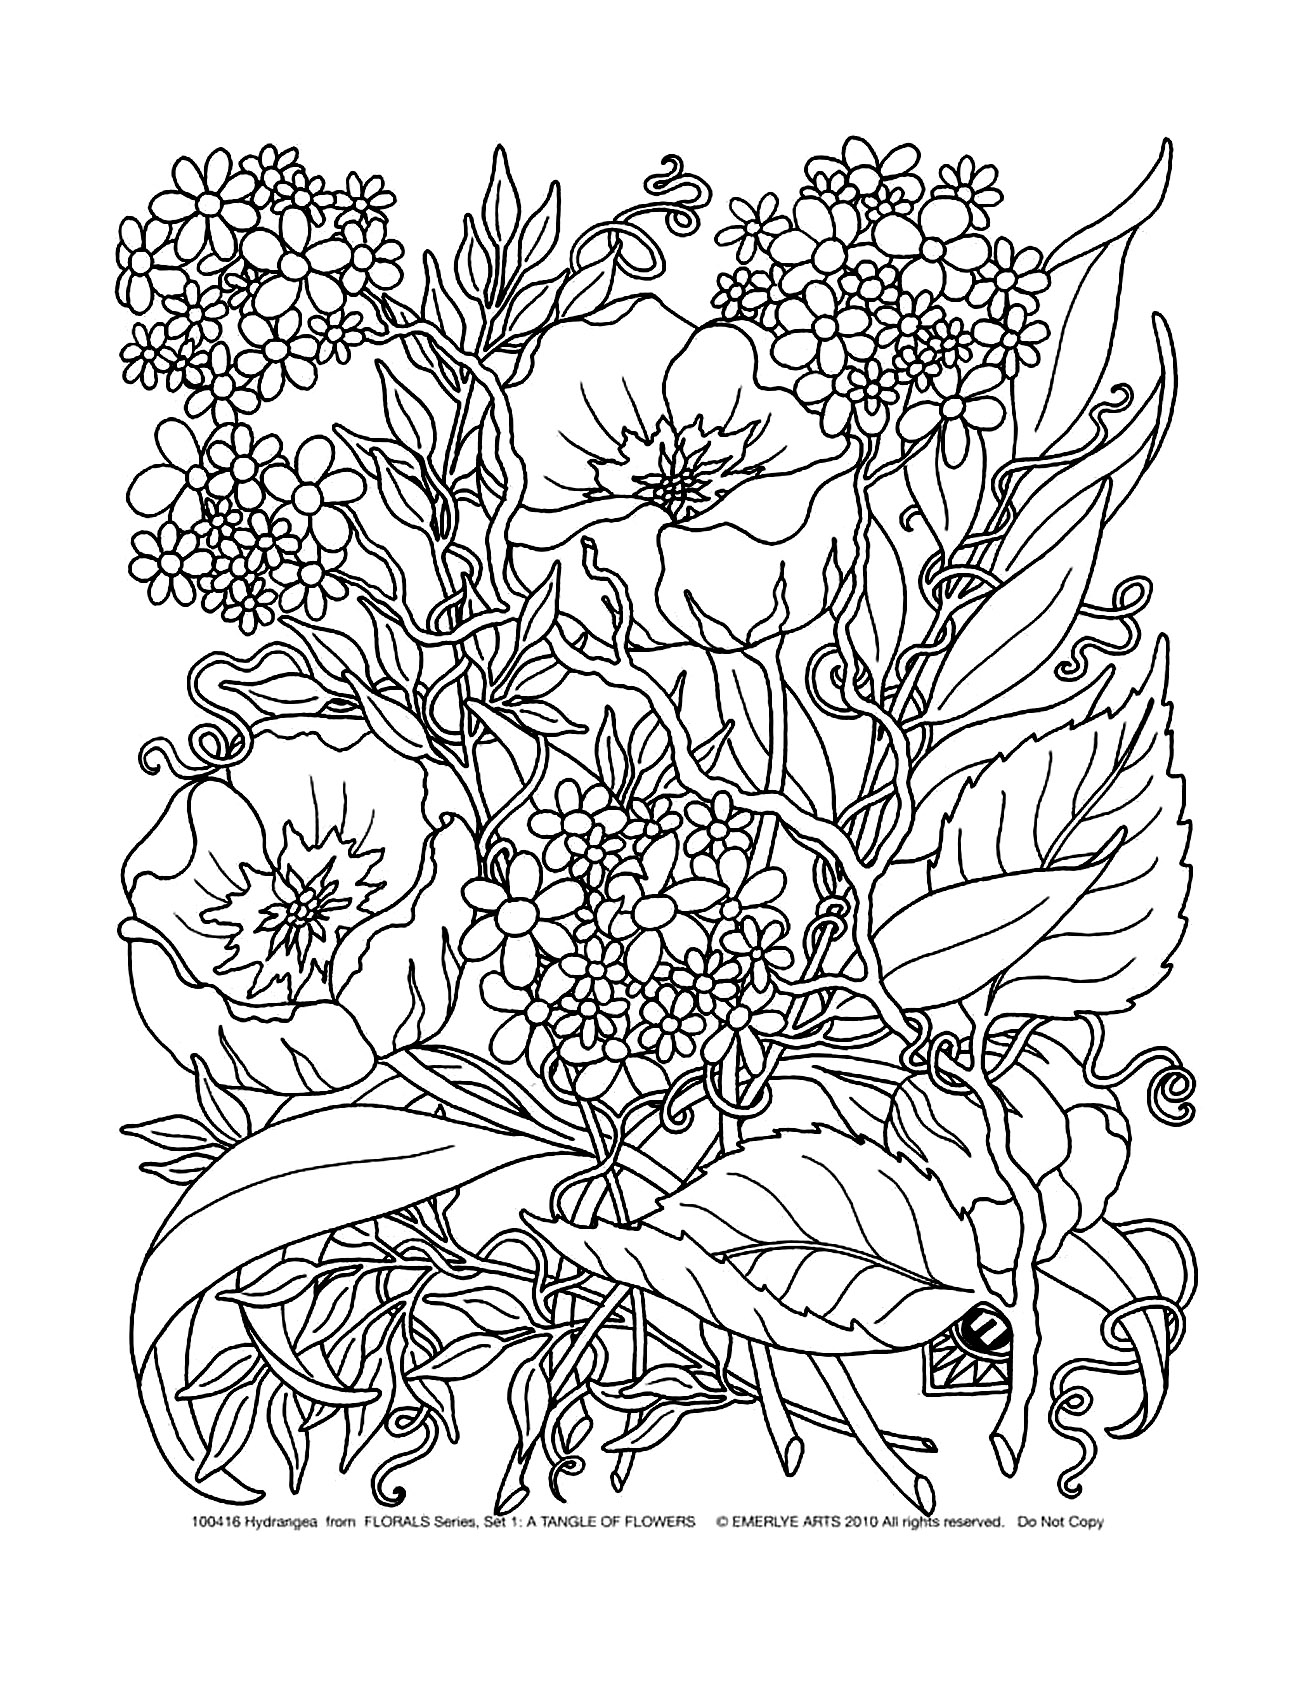 Flowers & vegetation - Coloring Pages for Adults | 1681x1300